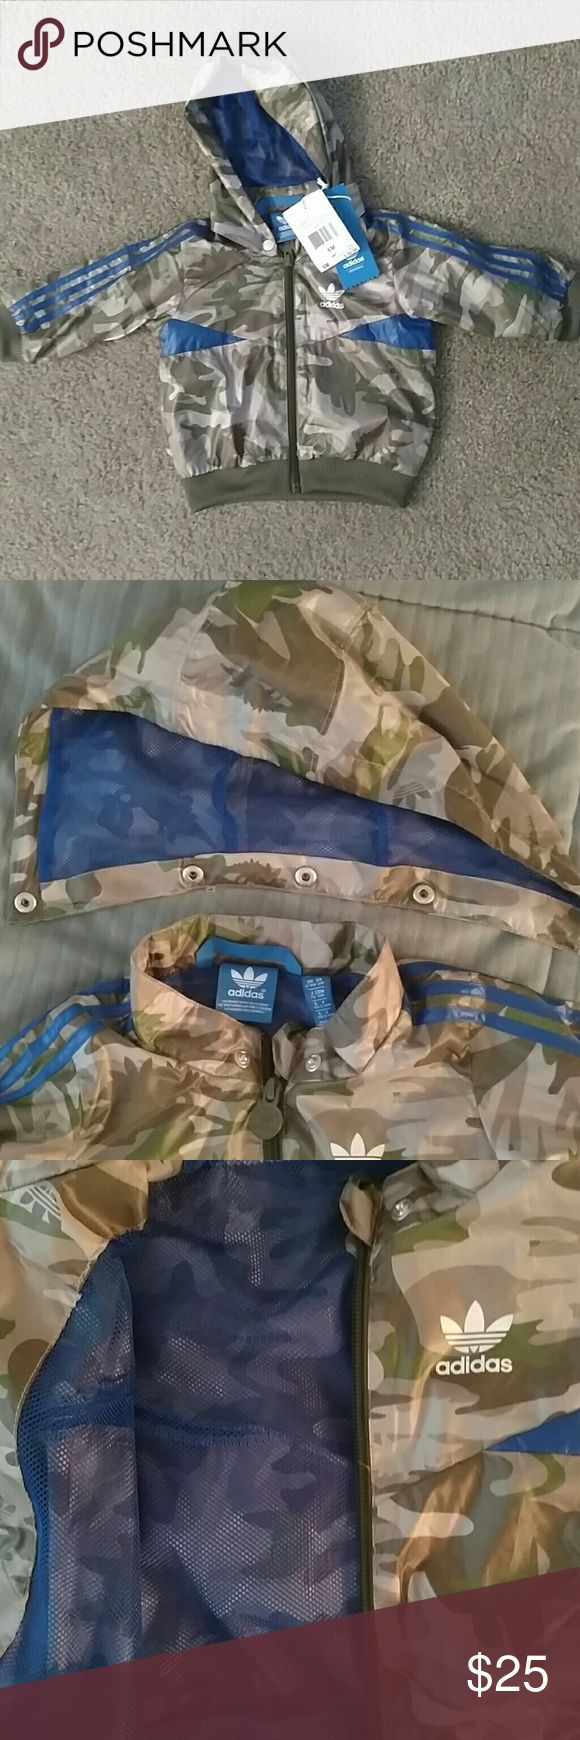 NWT Adidas Kids I Camott Hoodie Jacket. Sz 6months Adorable Adidas infant jacket size 6 months  Camouflage print with detachable hood  Full zip100% Polyester Feel free to ask me any questions adidas Jackets & Coats